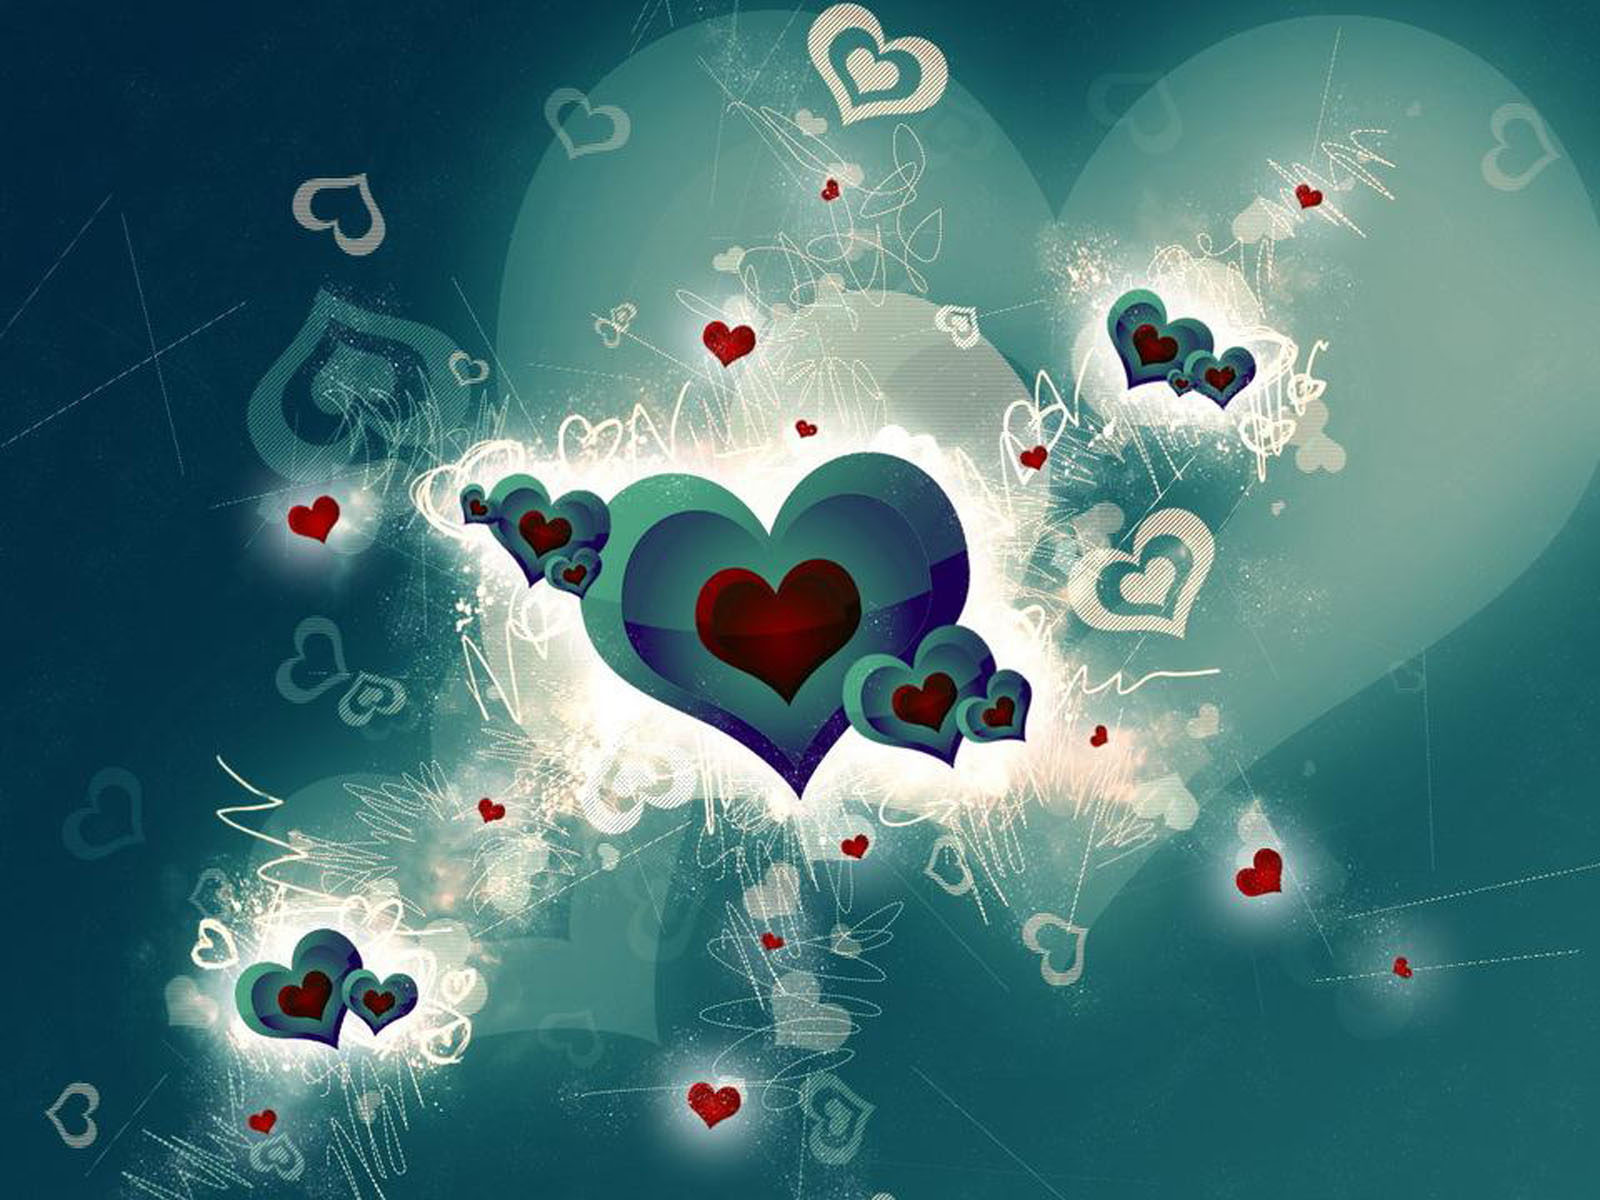 Wallpapers 3d heart wallpapers for 3de wallpaper